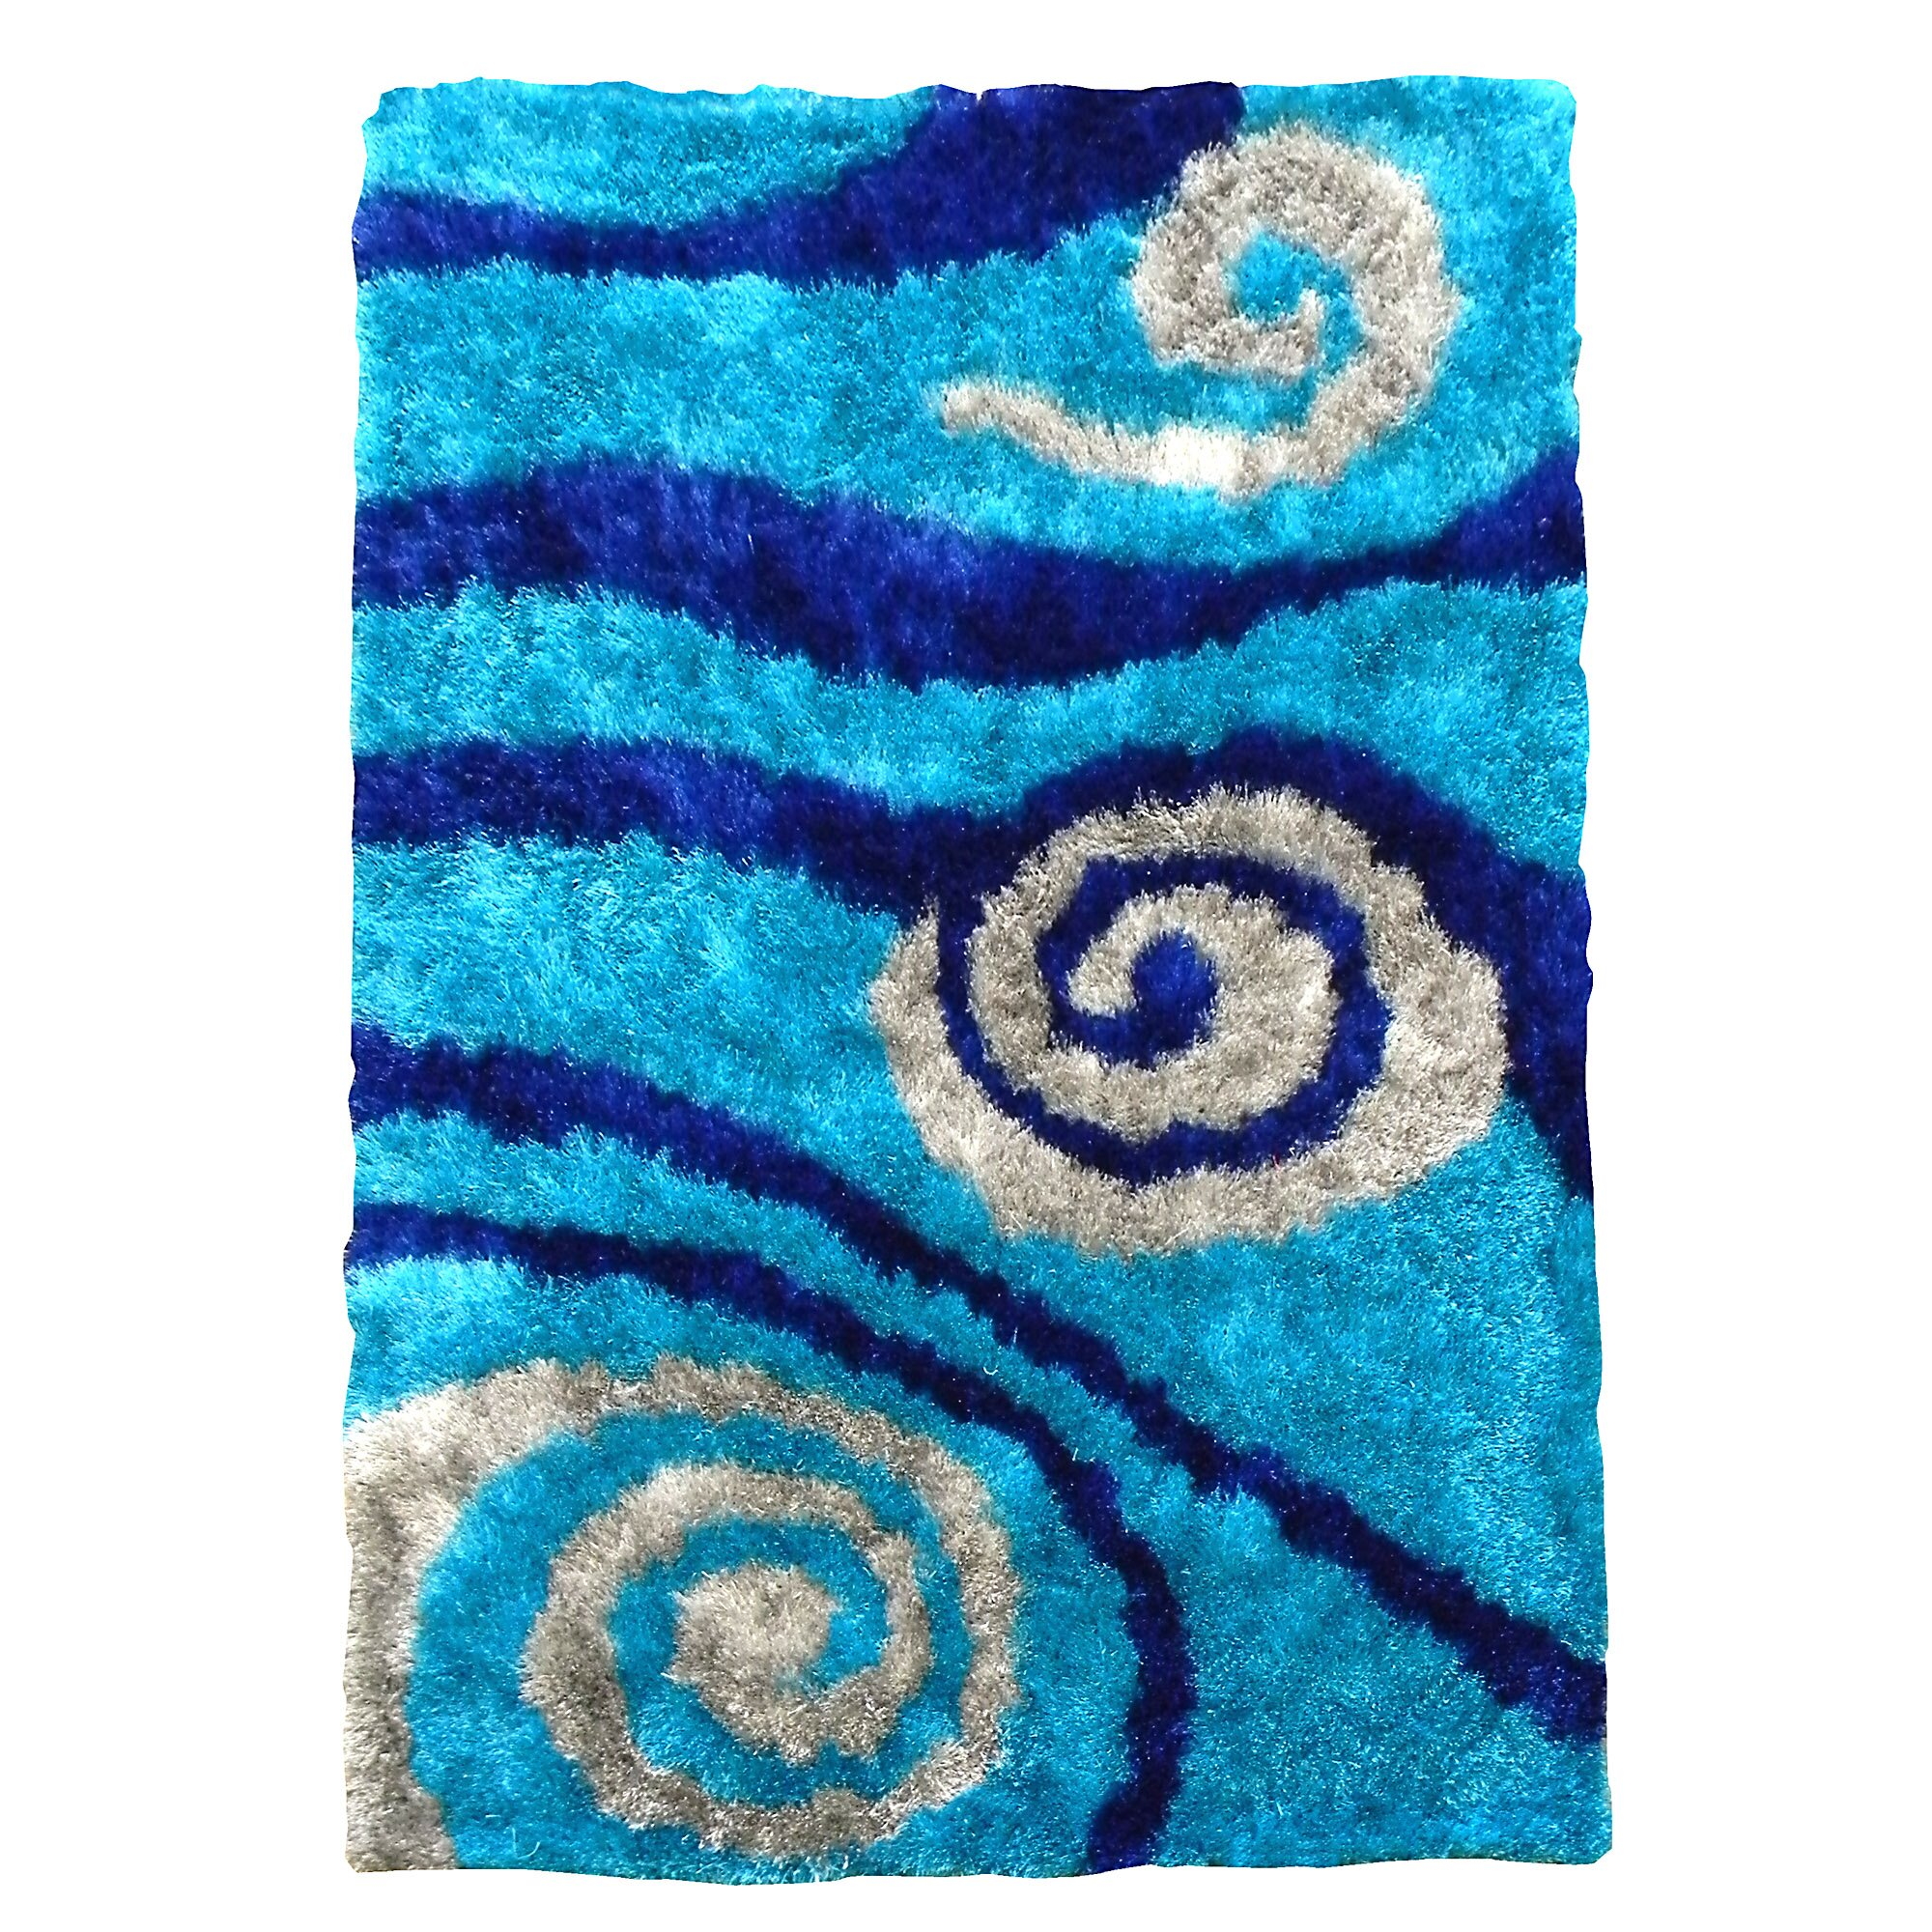 Bachelorette Pad Decor Donnieann Company Flash Shaggy Blue Abstract Swirl Area